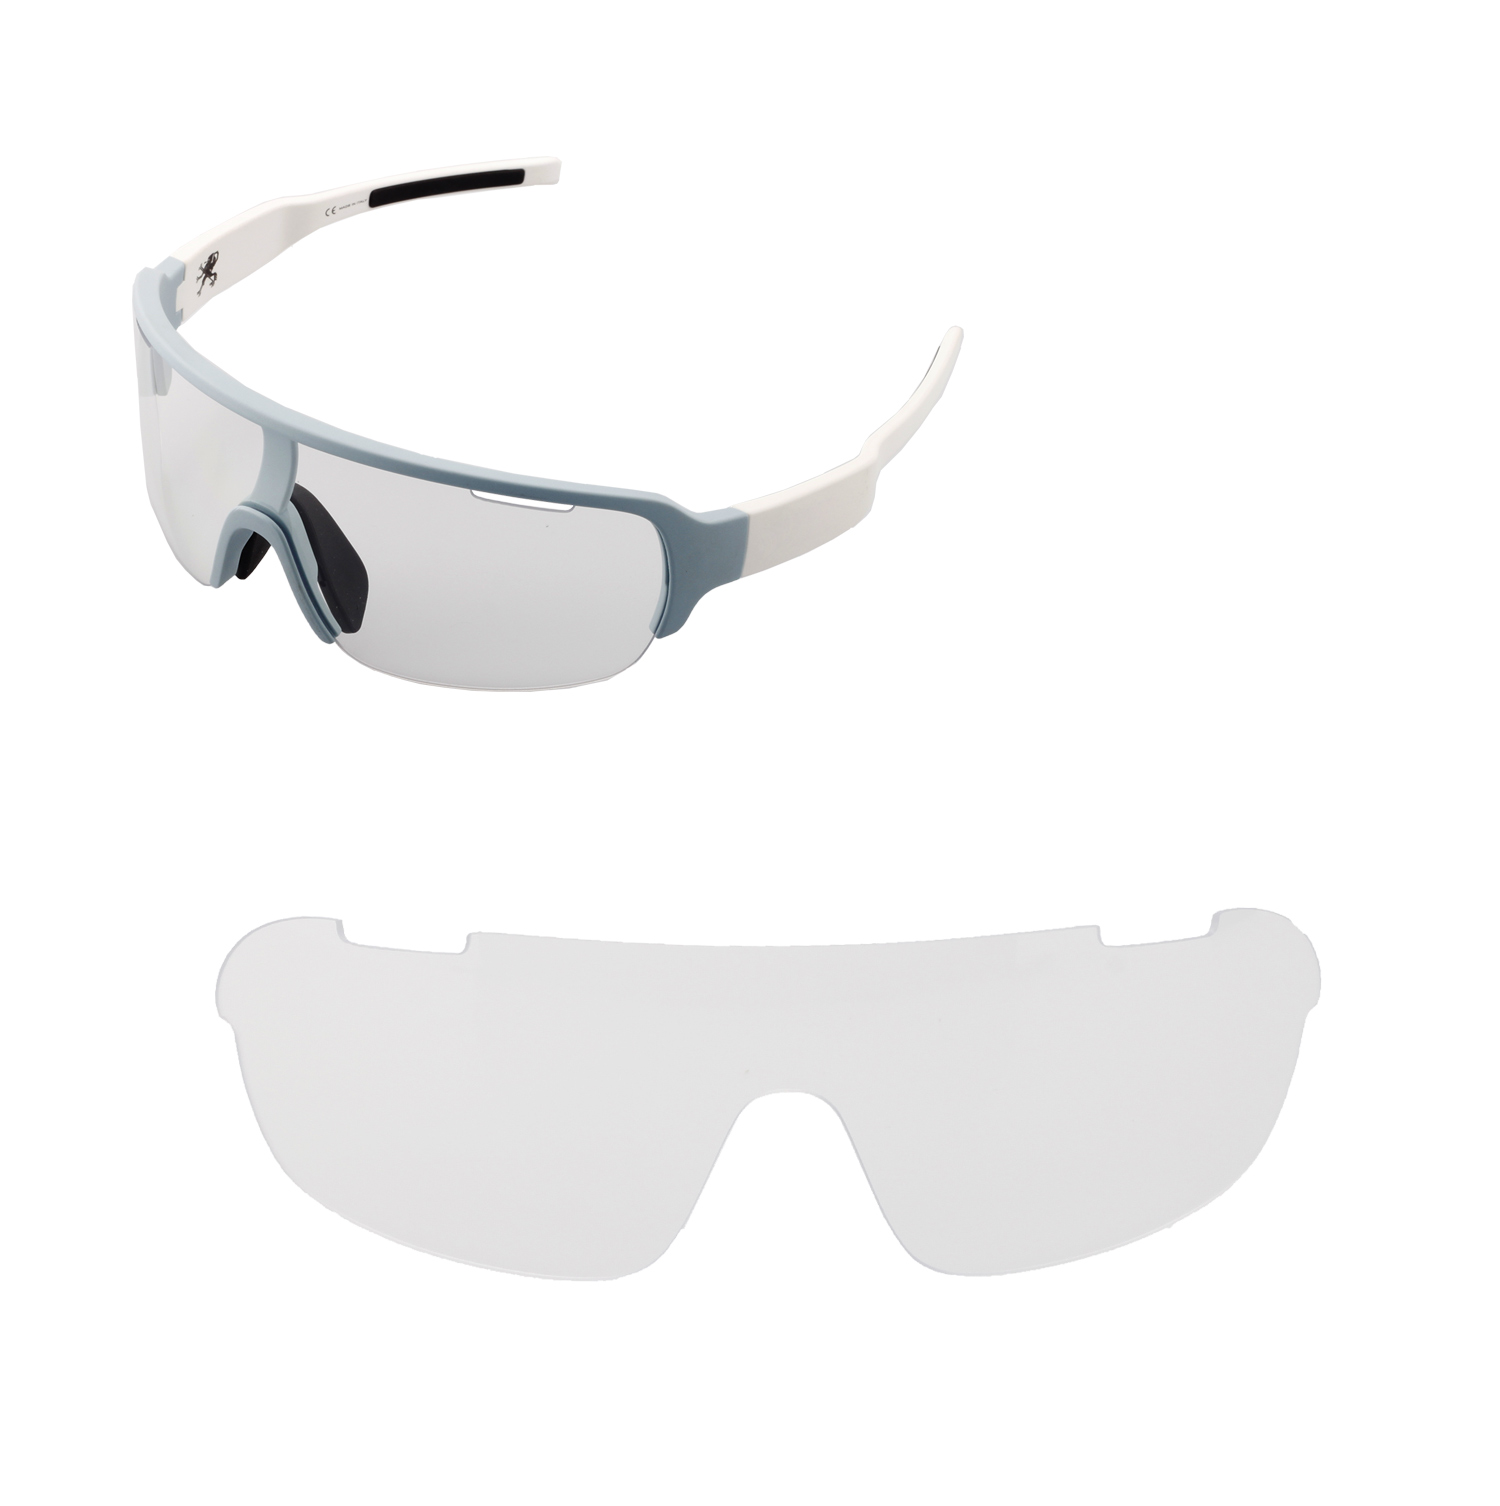 7497ff905b6 Details about Walleva Non-Polarized Clear Replacement Lenses For POC Half  Blade Sunglasses